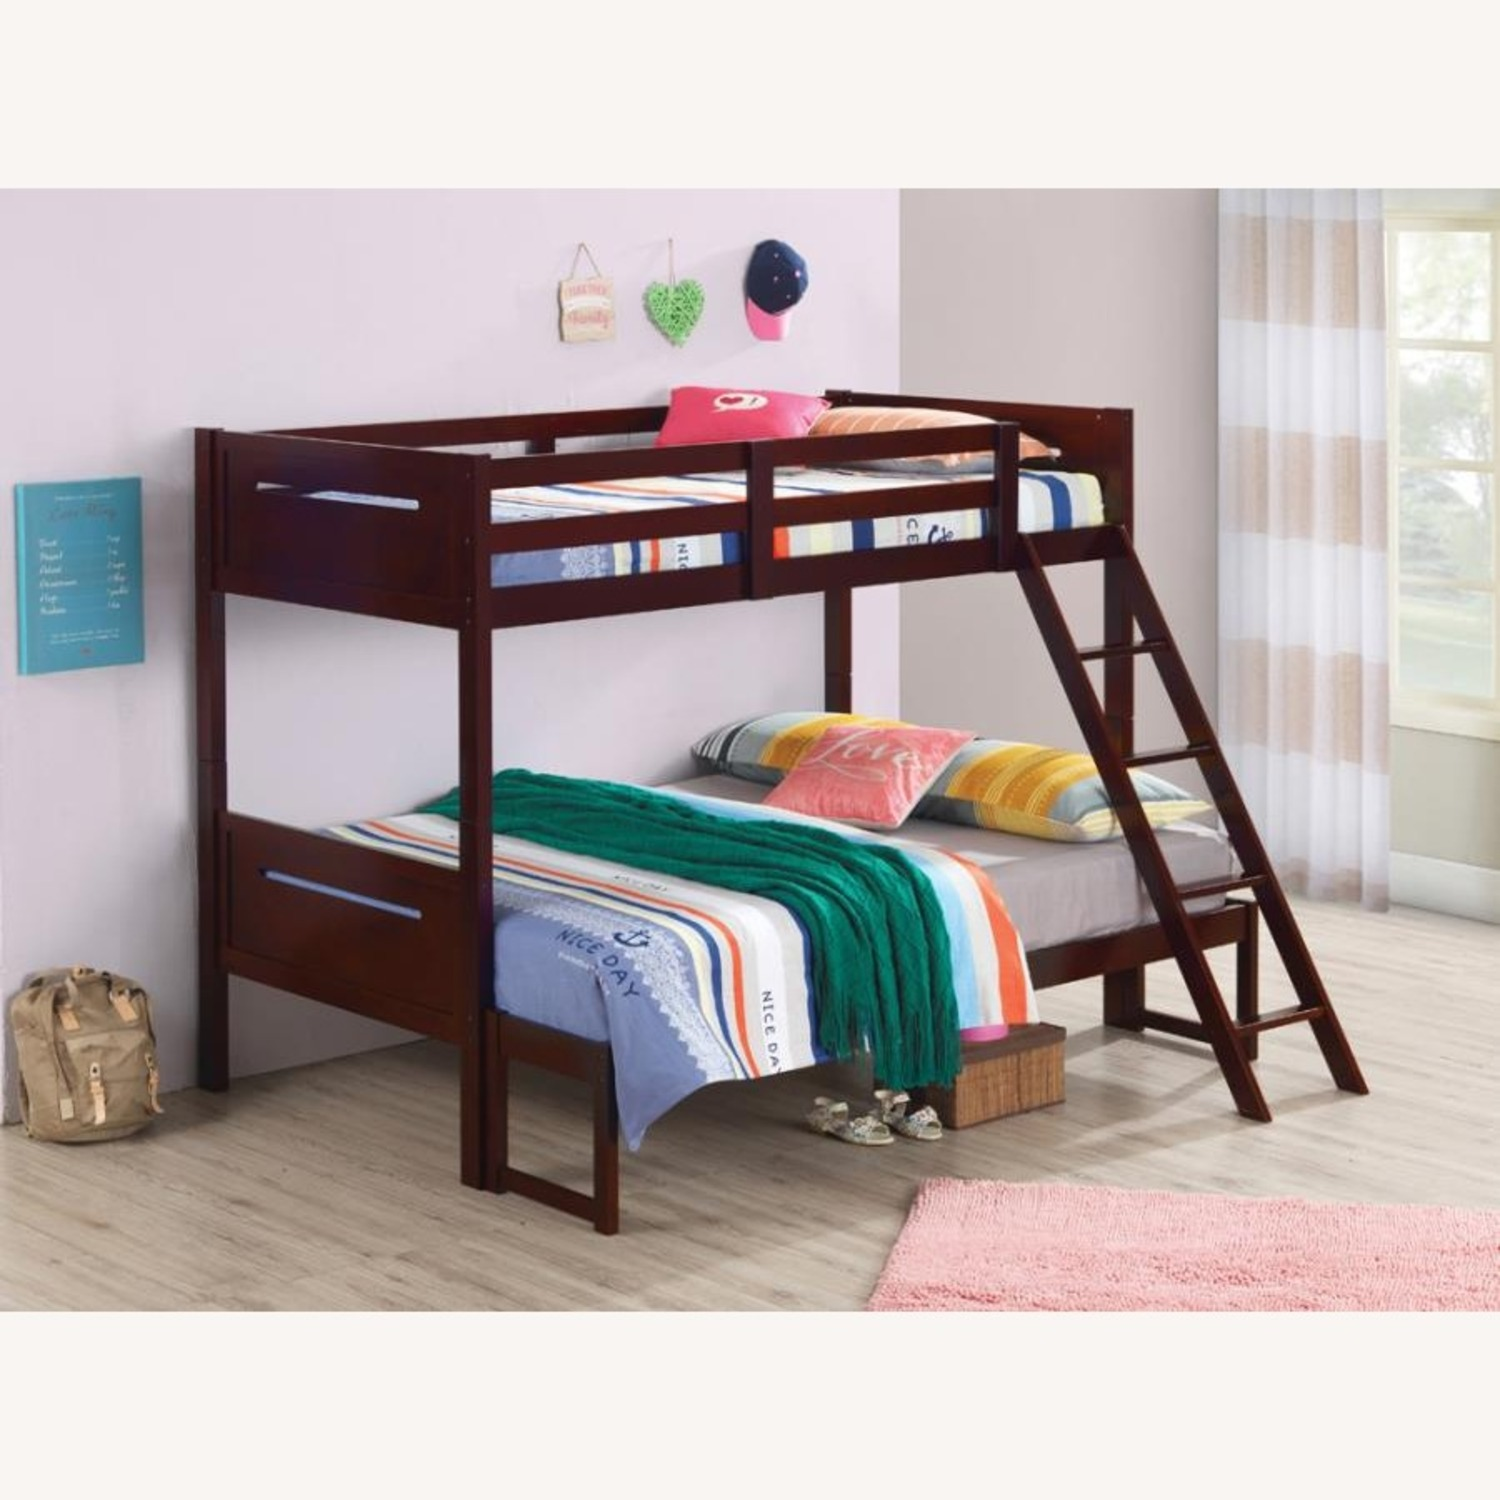 Twin Over Full Bunk Bed In Rubberwood Espresso - image-3